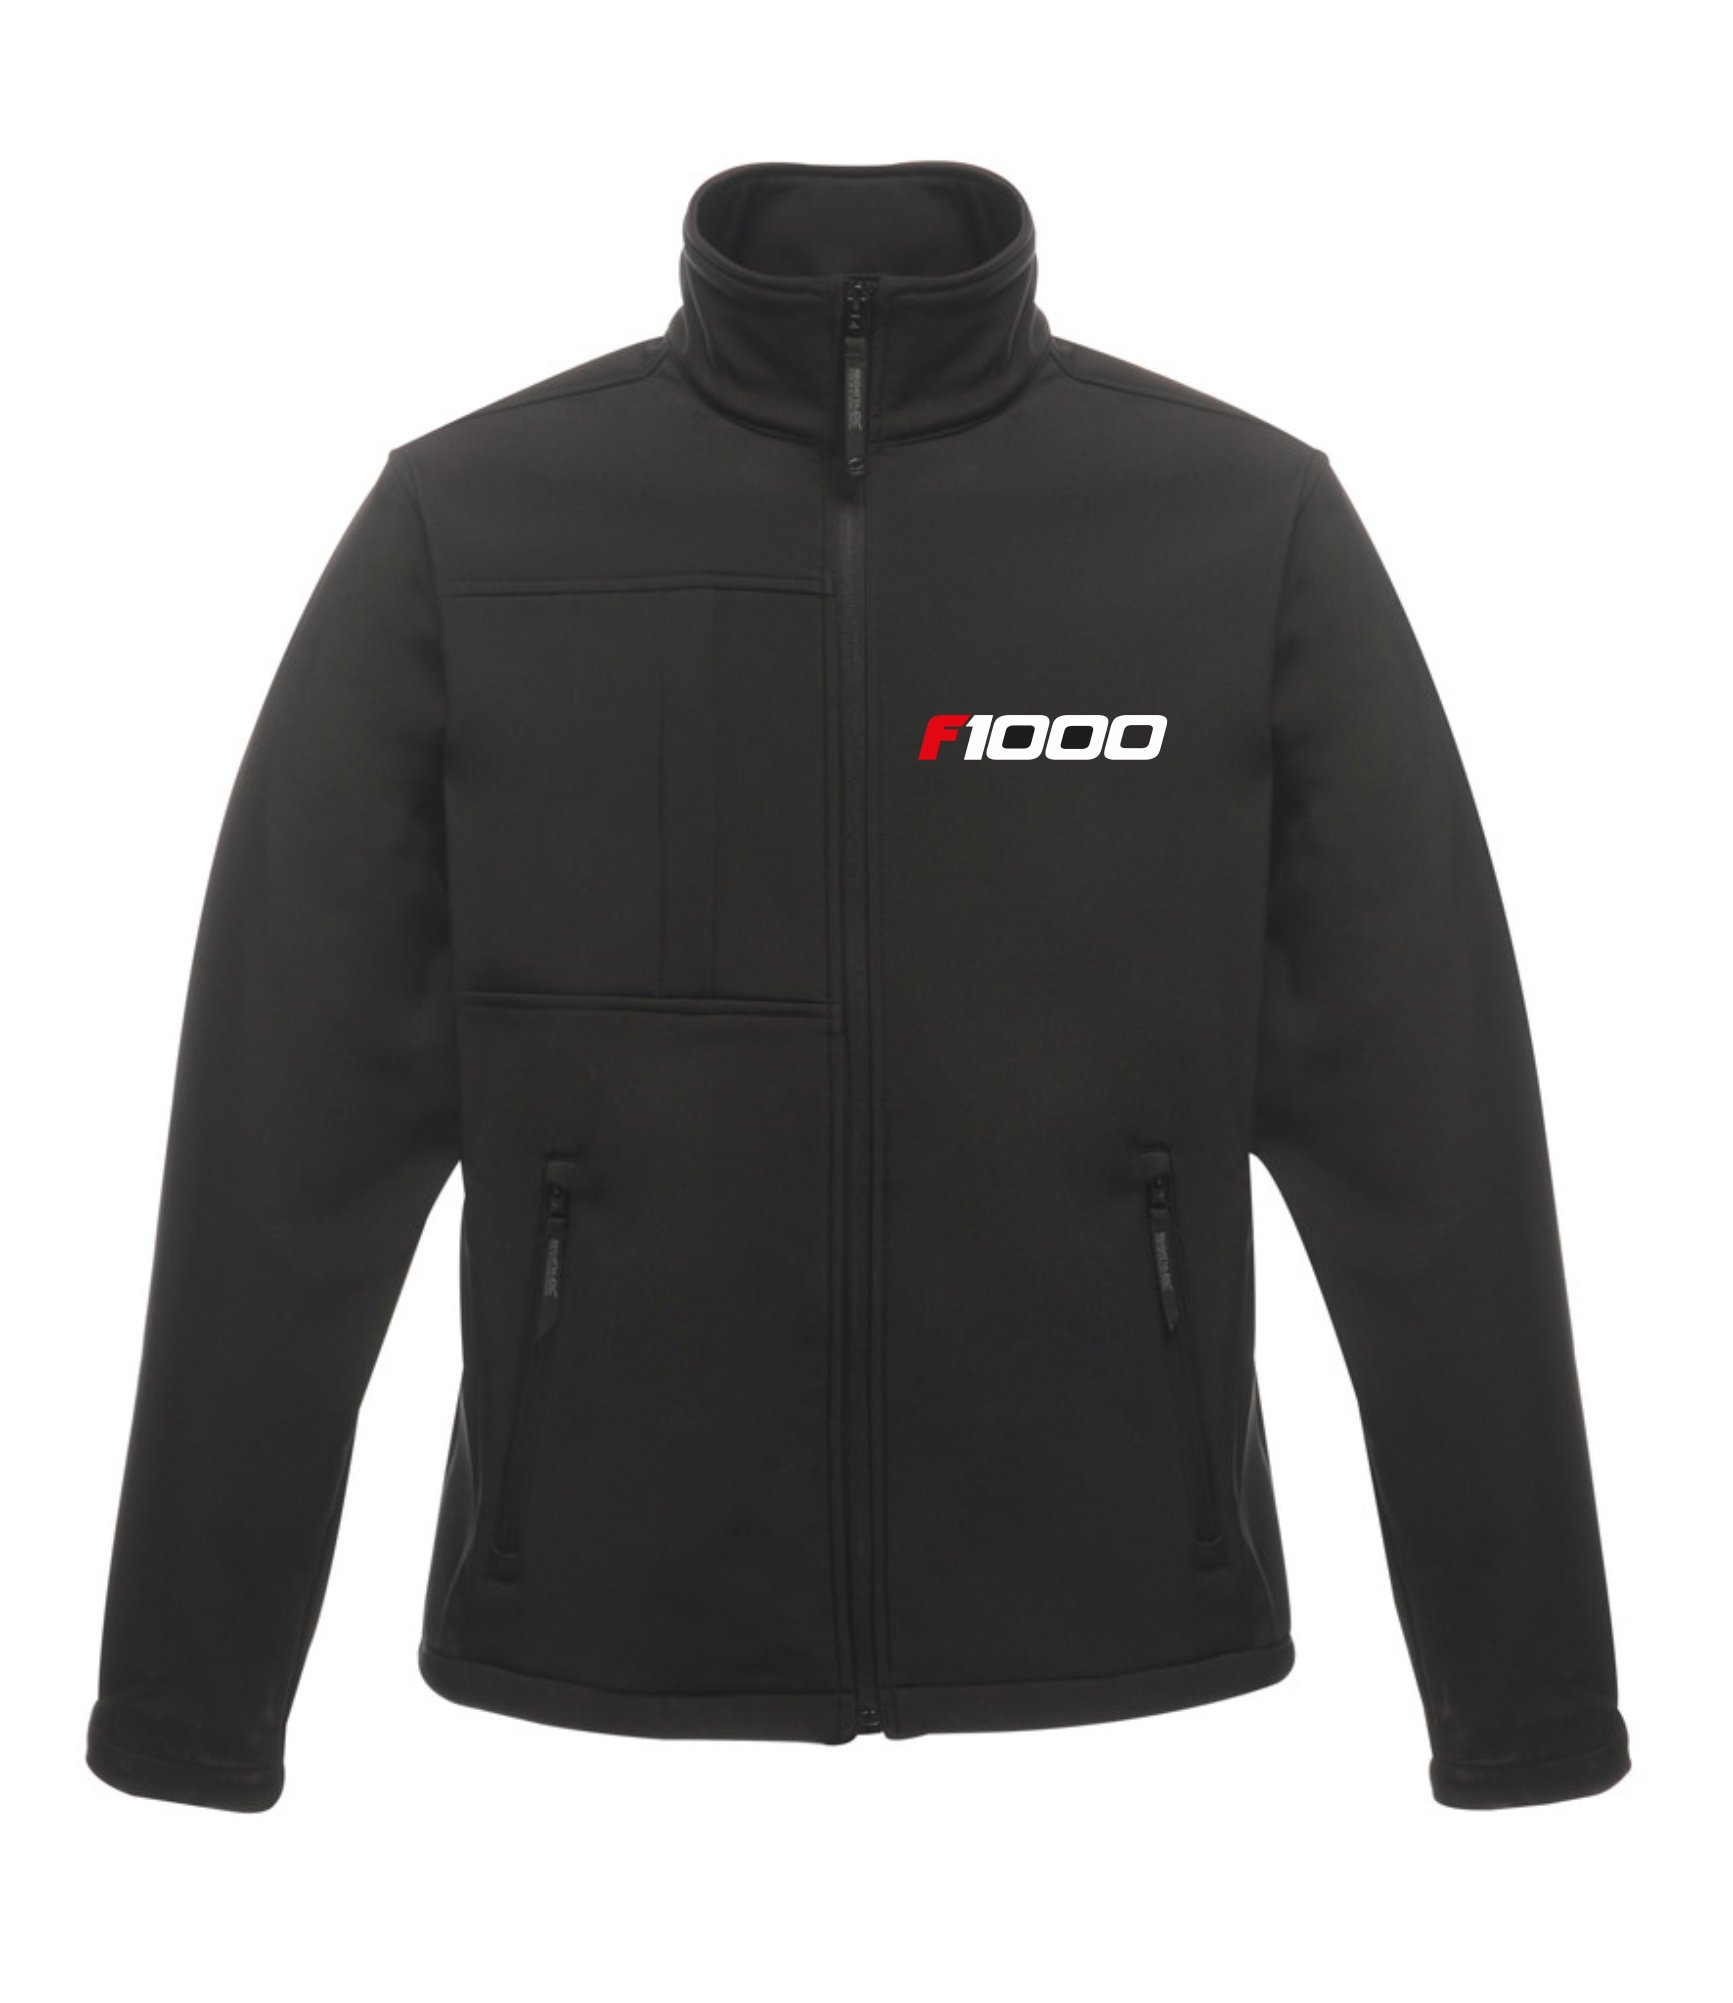 F1000 Ladies Softshell